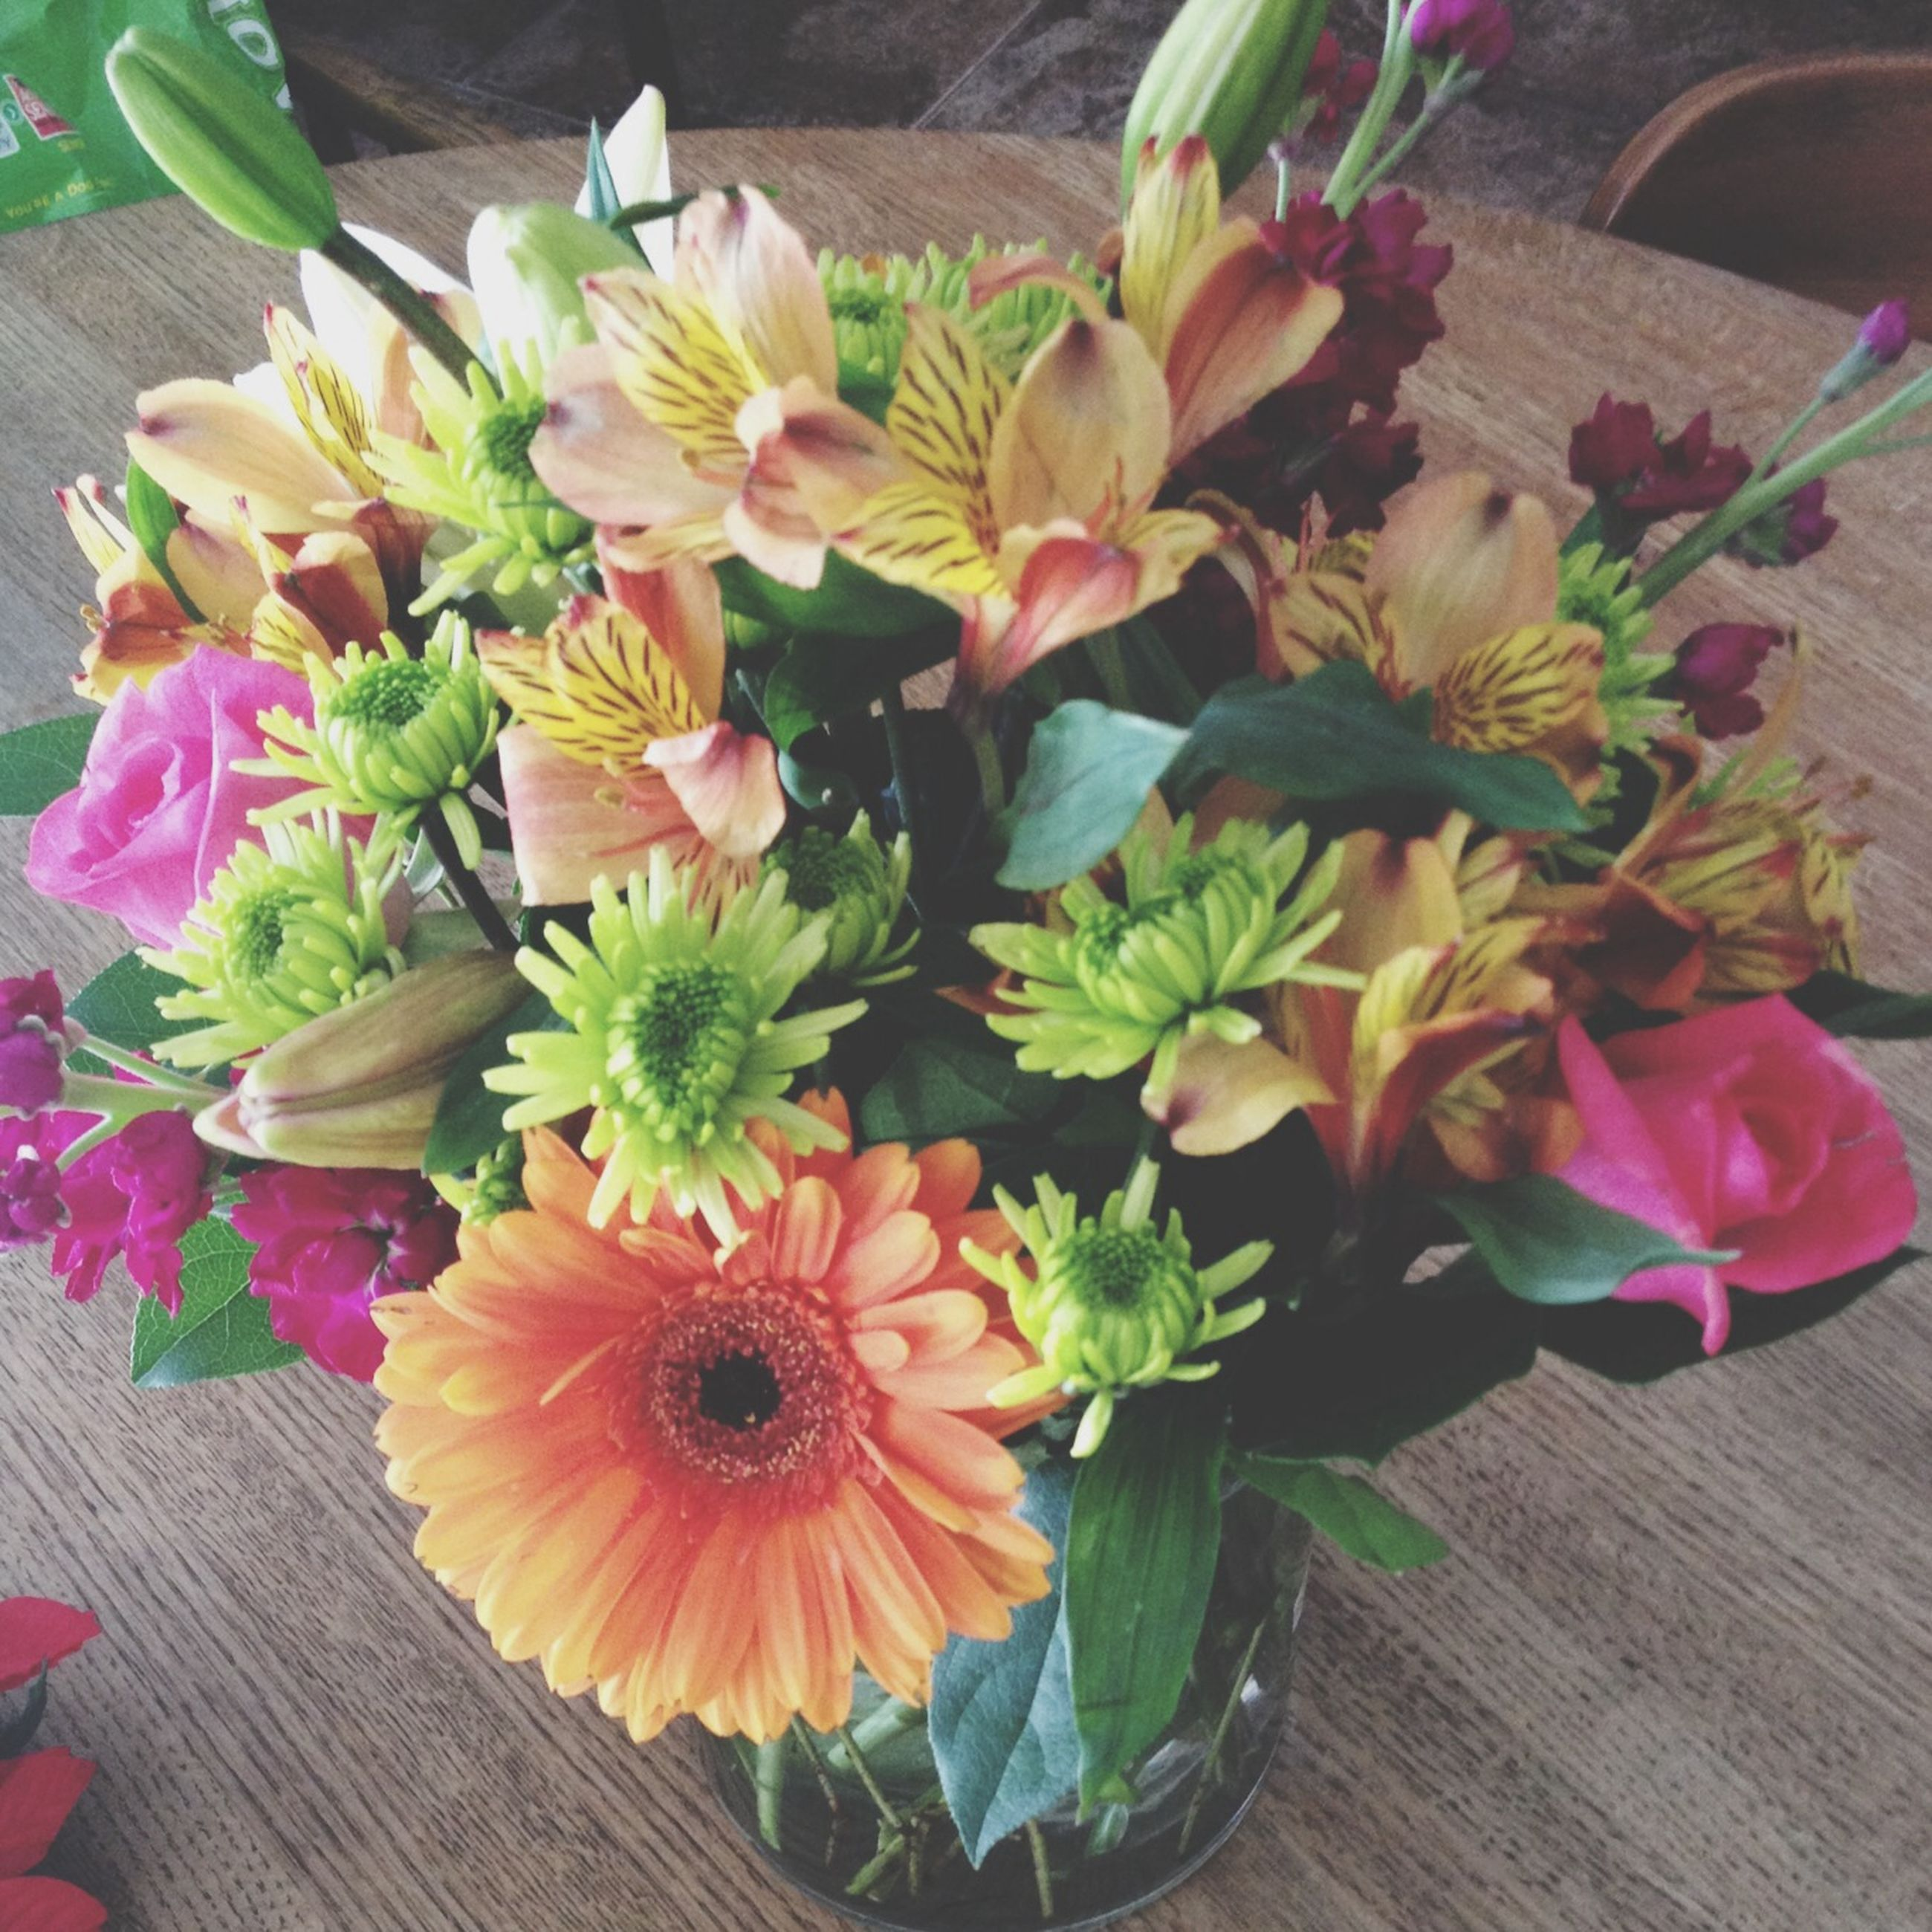 flower, freshness, petal, indoors, fragility, table, vase, flower head, high angle view, beauty in nature, bouquet, flower arrangement, plant, potted plant, nature, growth, wood - material, leaf, flower pot, bunch of flowers